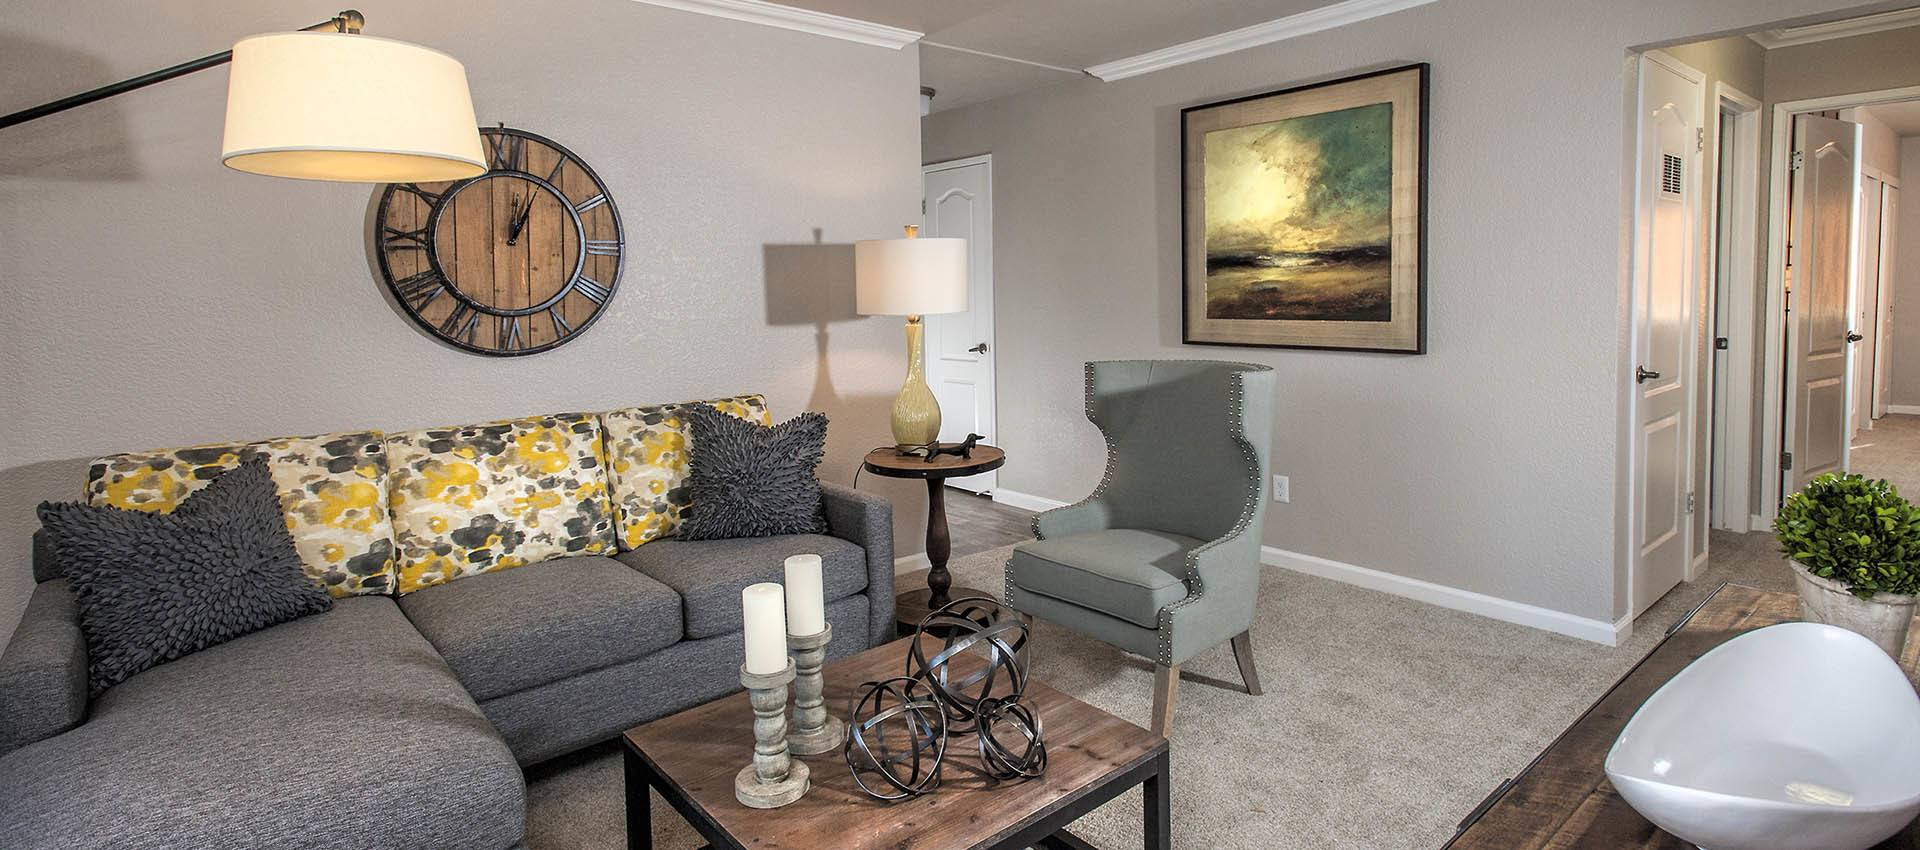 Nicely Decorated Living Room at Deer Valley Apartment Homes in Roseville, California